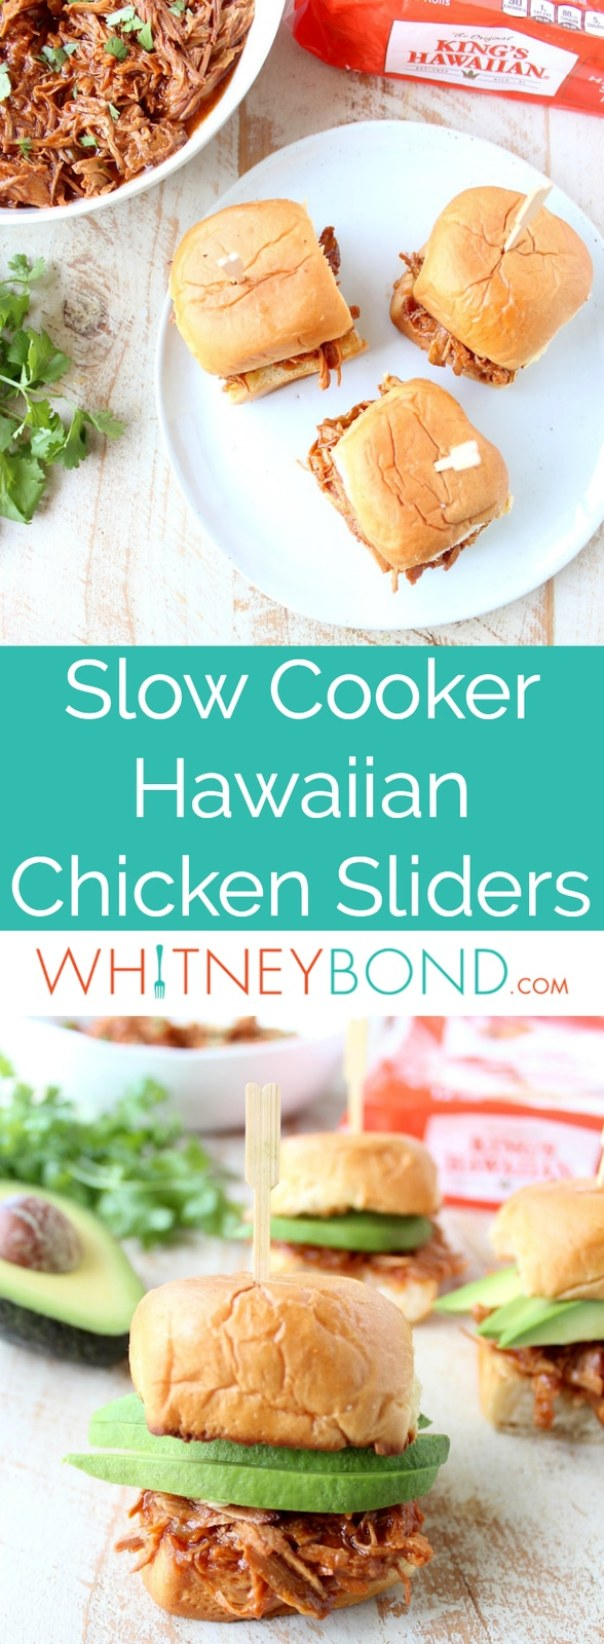 Hawaiian Chicken Sliders are easily made by tossing chicken, pineapple & Hawaiian BBQ sauce in a slow cooker for a few hours, then serving on Hawaiian rolls!